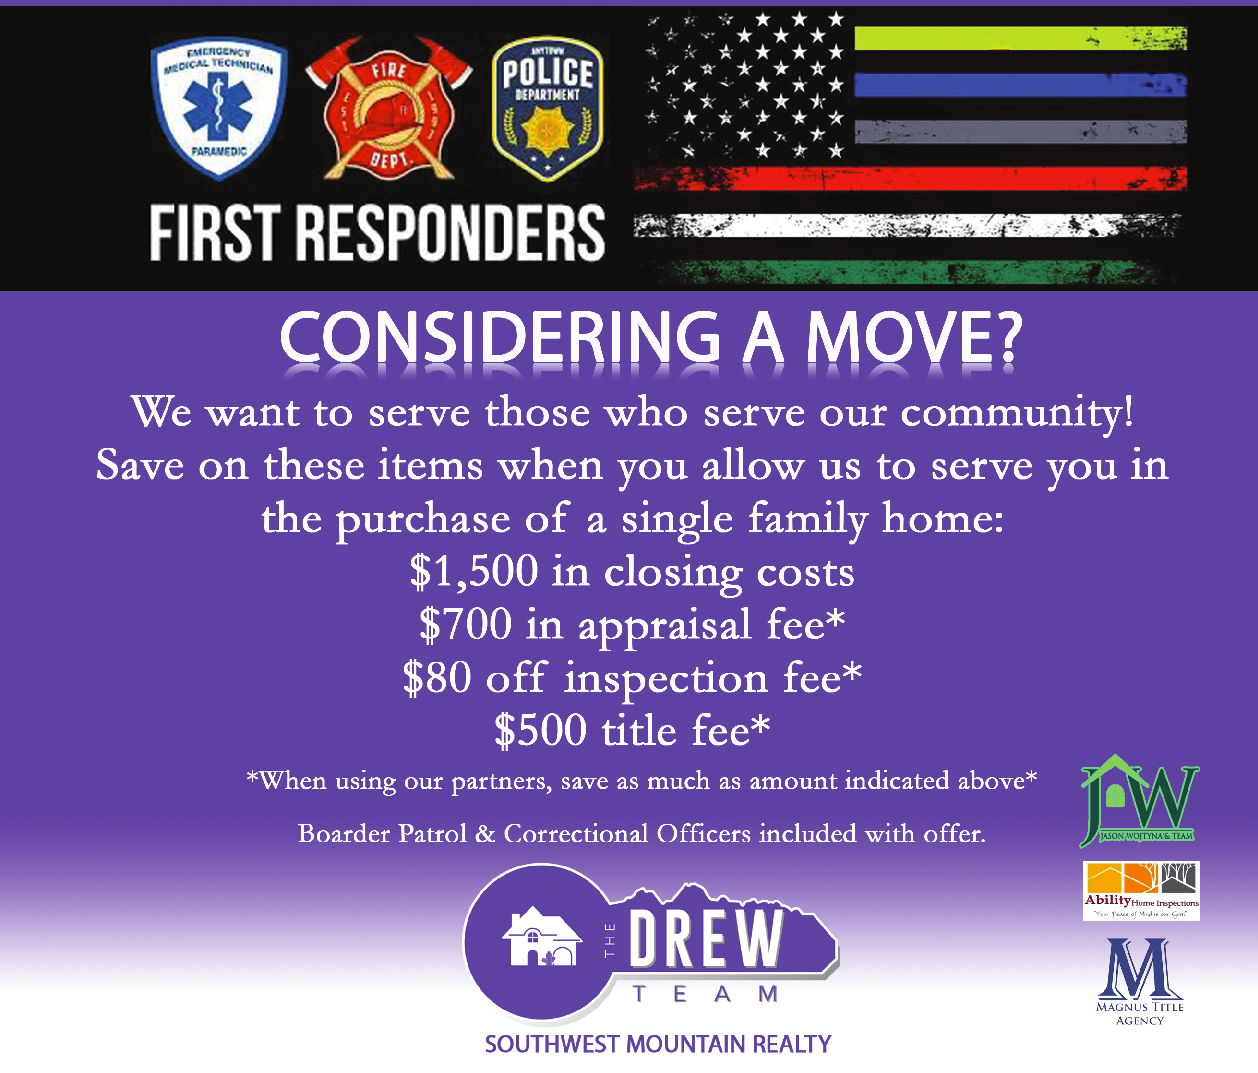 The Drew Team Serving First Responders and save them money